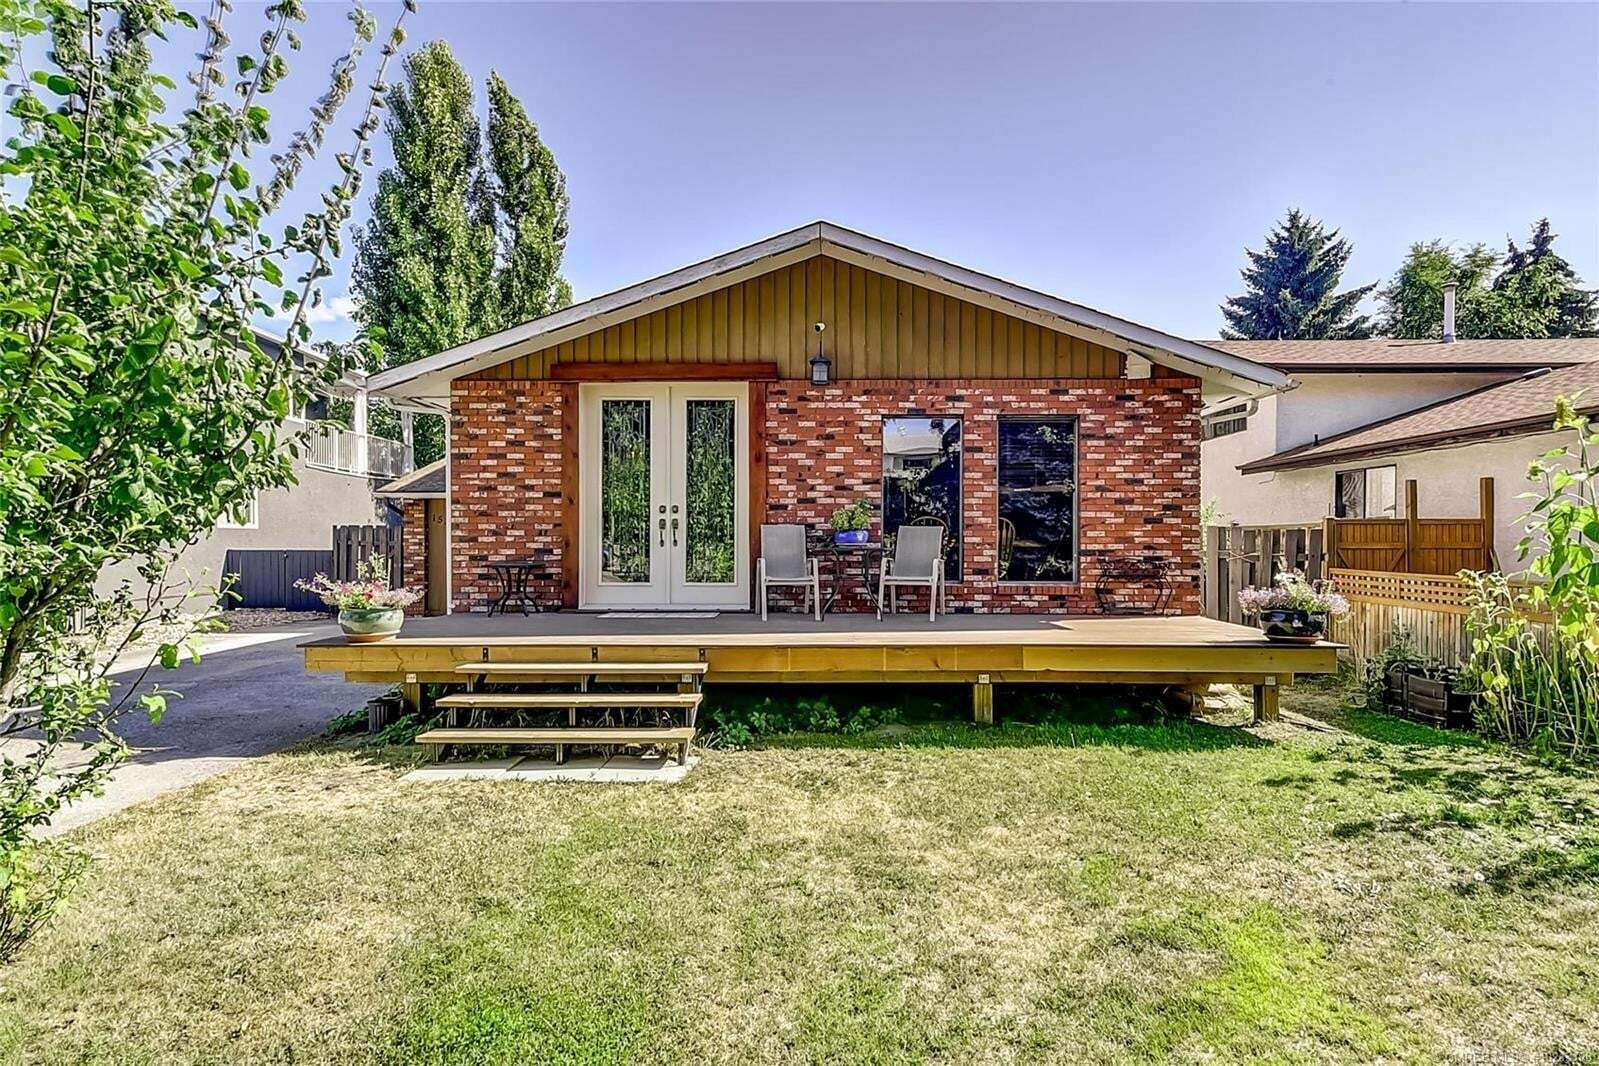 House for sale at 1525 Leaside Ave Kelowna British Columbia - MLS: 10213108